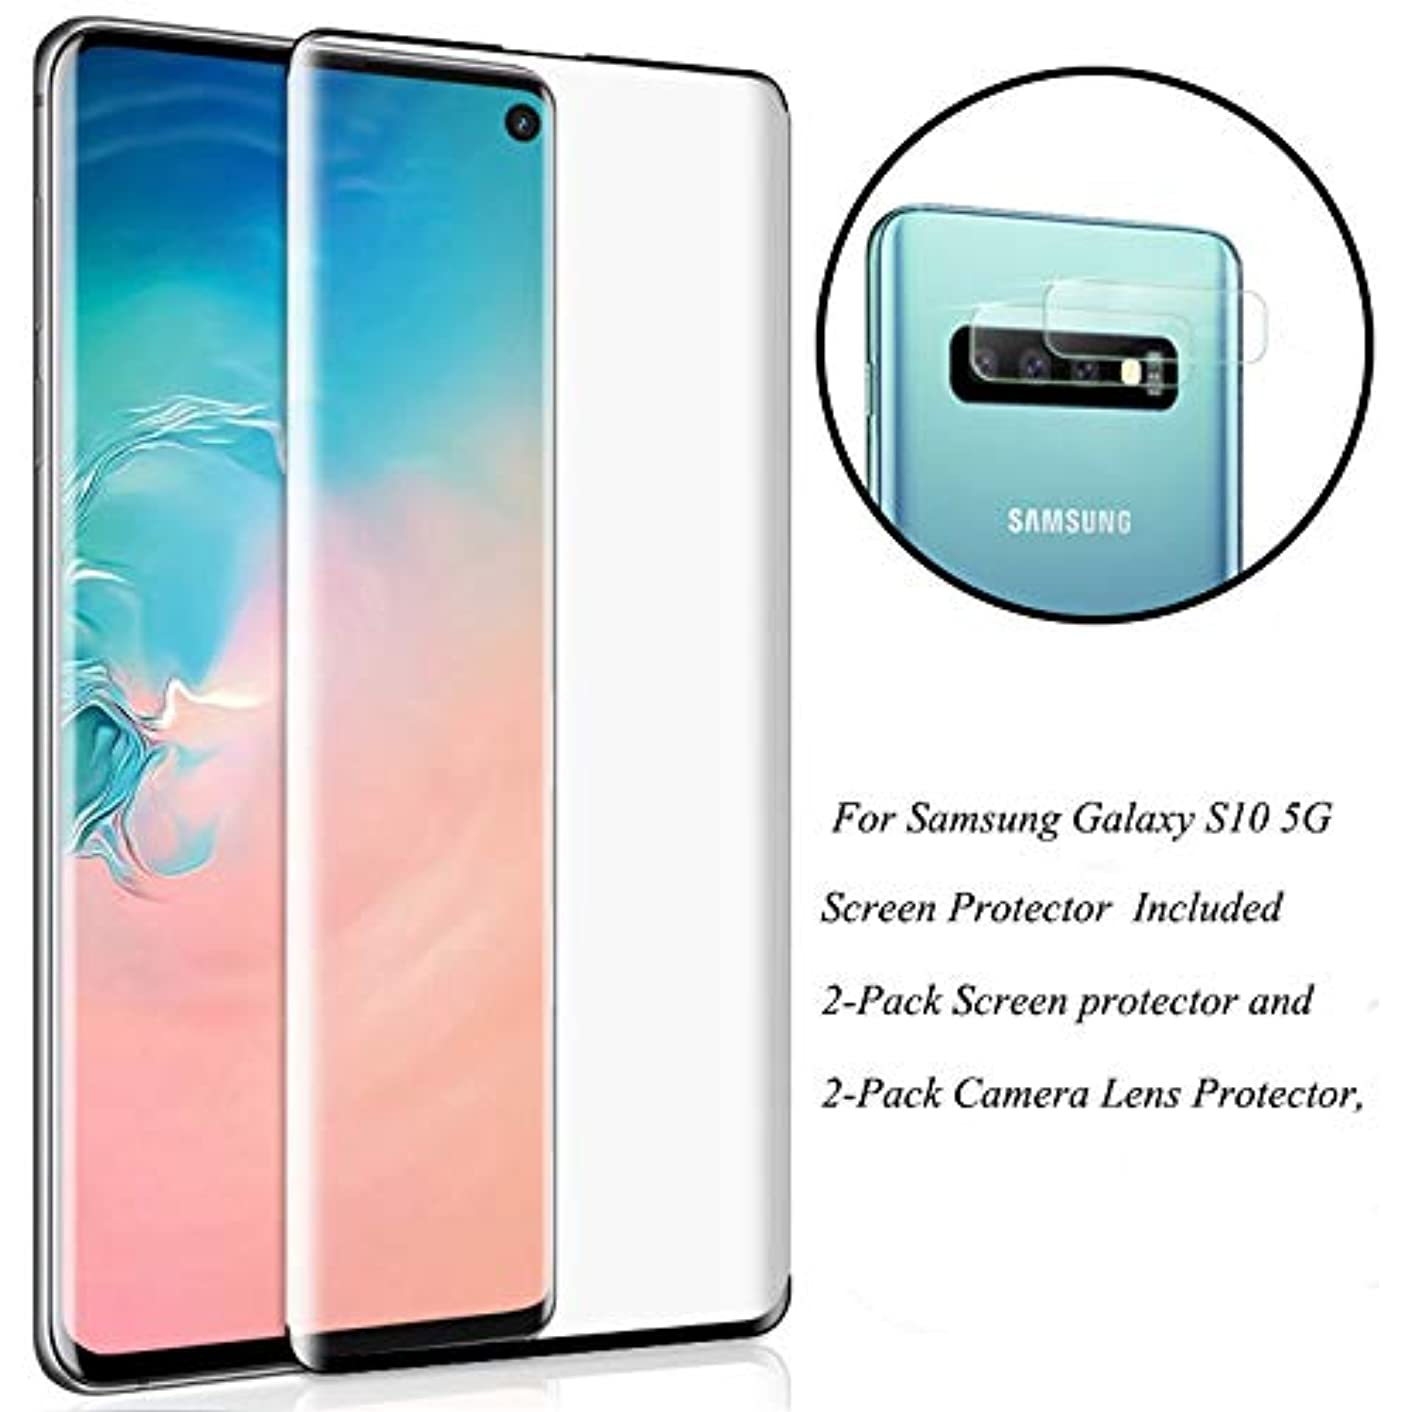 Galaxy S10 5G (6.7'') Screen Protector with Camera Lens Protector, [Case Friendly][9H Hardness][ Fingerprint Unlocking][Bubble-Free] Tempered Glass Screen Protector for Samsung Galaxy S10 5G